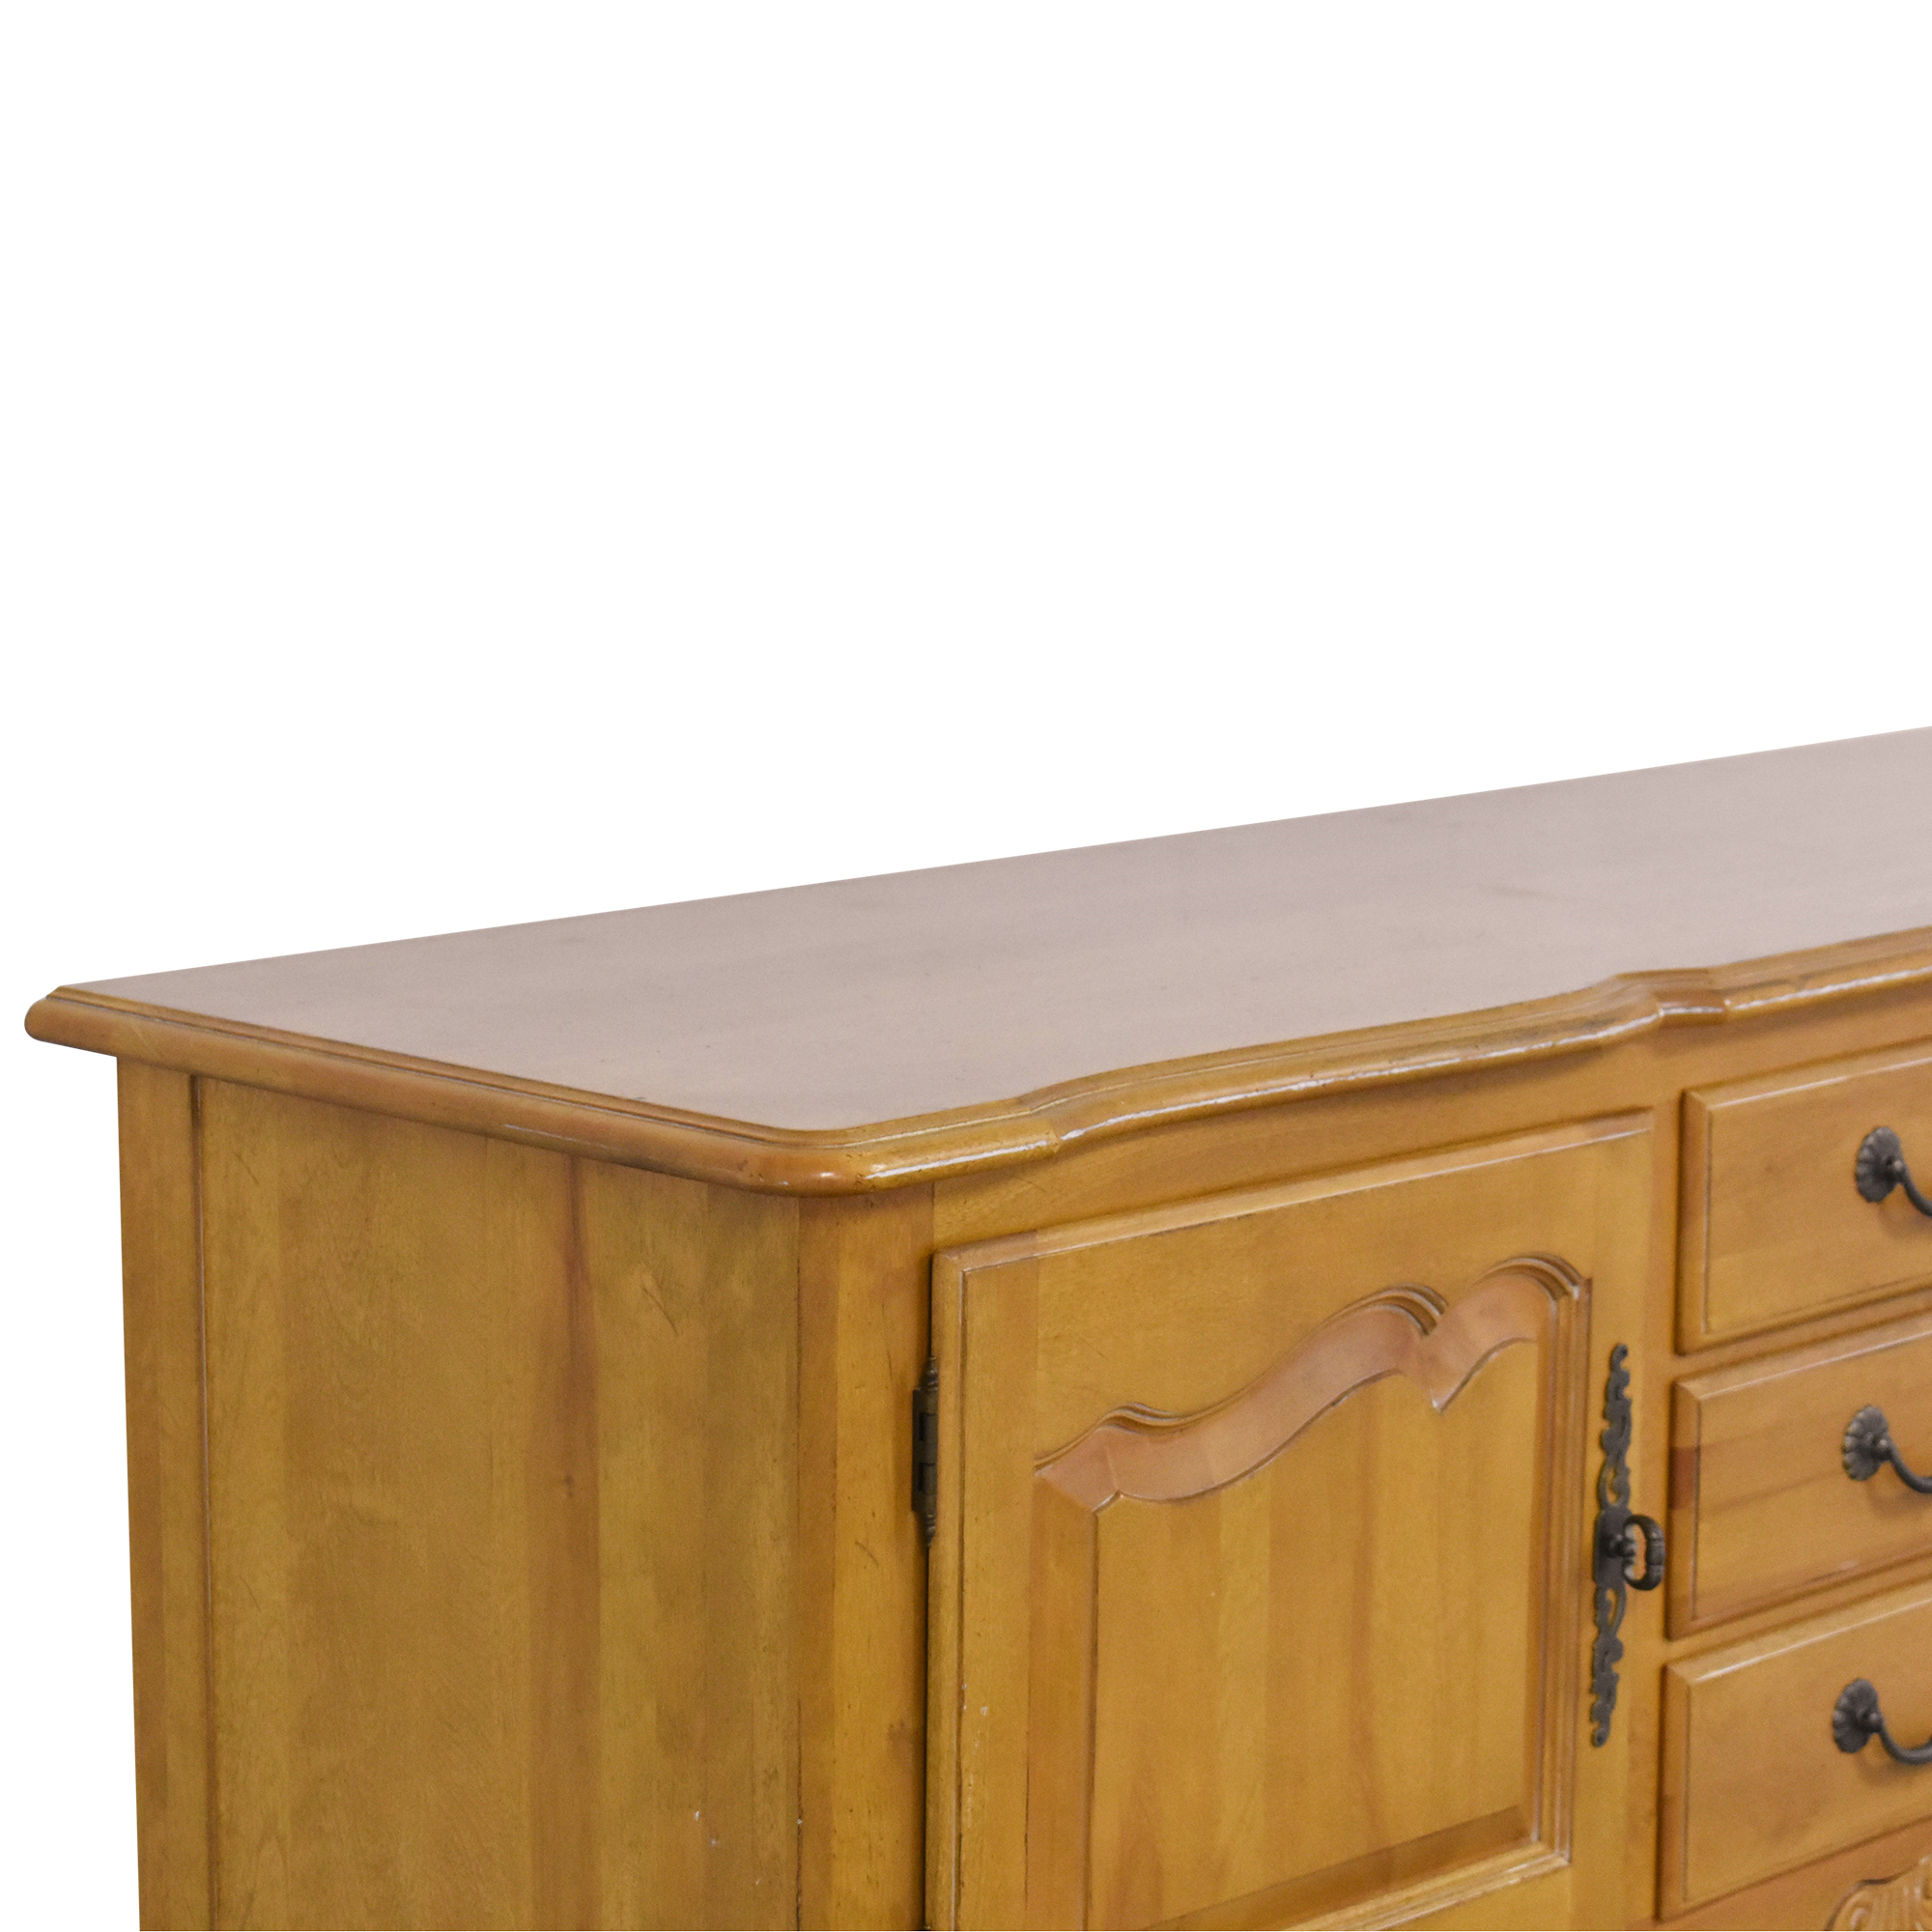 Ethan Allen Ethan Allen French Country Sideboard ct